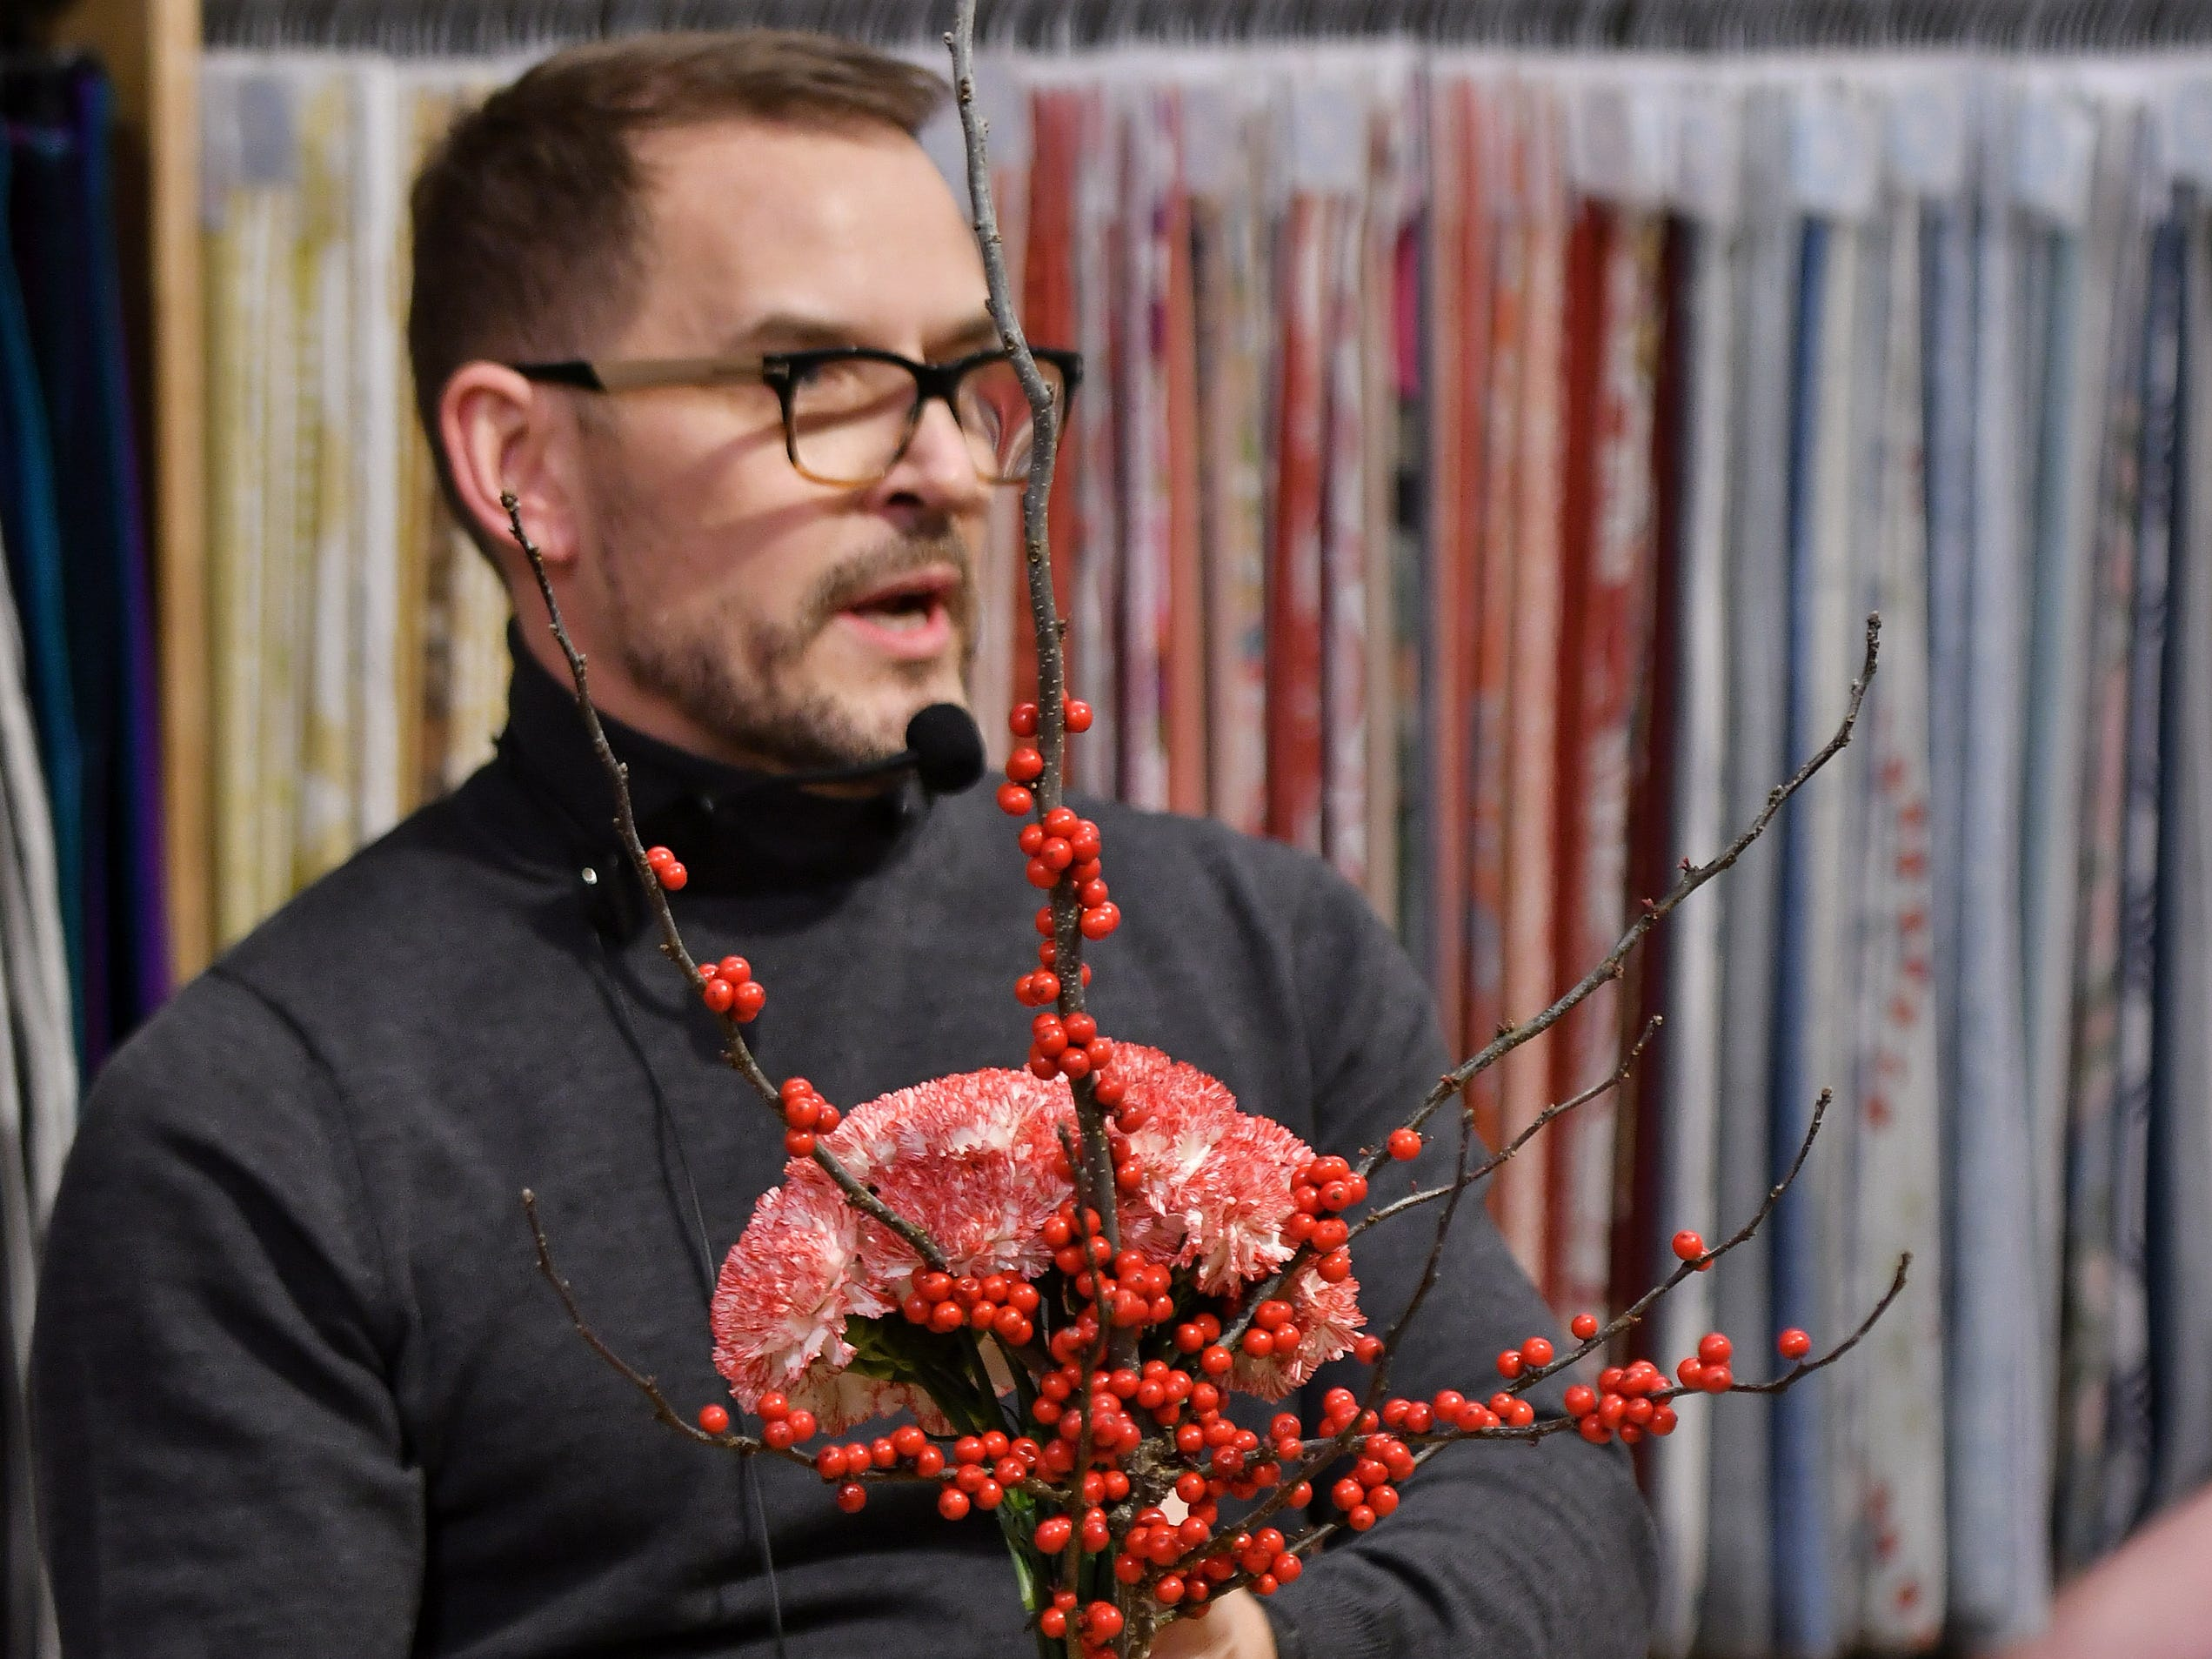 Jeffrey Jucewicz of Jeffrey Floral Architecture shows how simple and elegant a centerpiece can be made, this one with carnations and holly, at the Home for the Holidays installment of the Detroit News Dish & Design event at Leon & Lulu in Clawson, Mich. on Dec. 5, 2018.